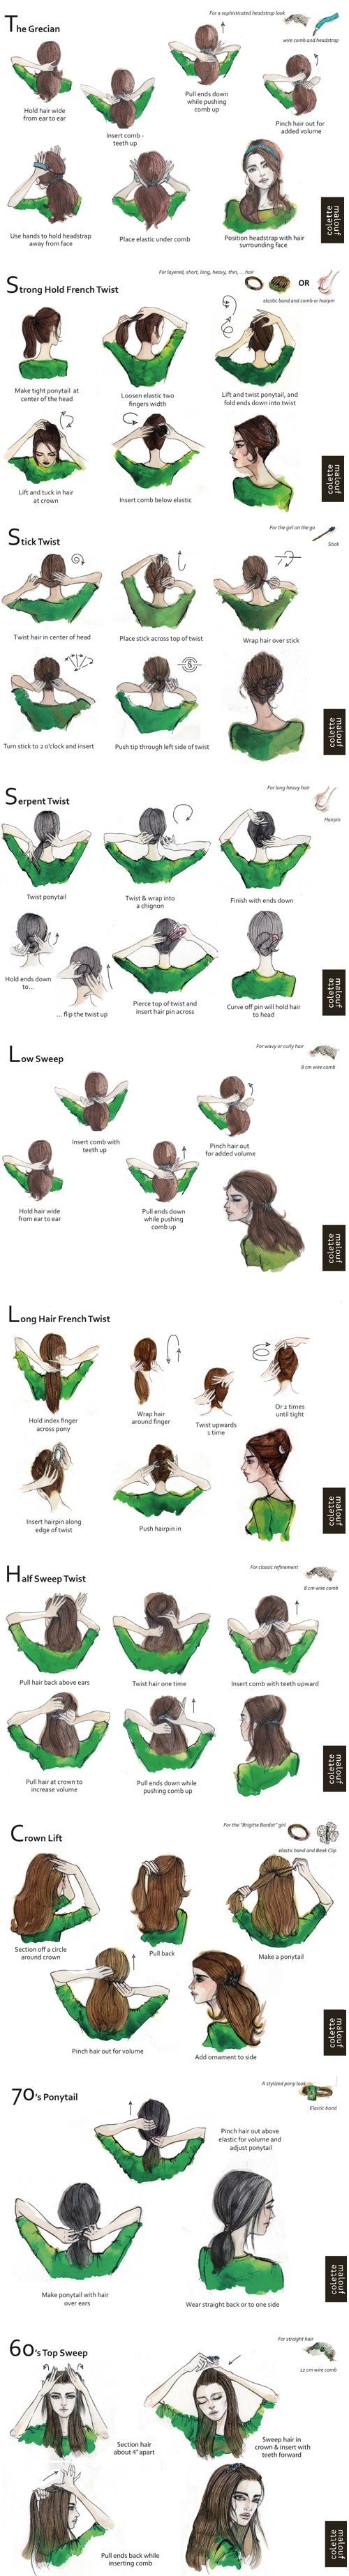 Have you seen these terrific hairstyle illustrations? All from Colette Malouf, w...